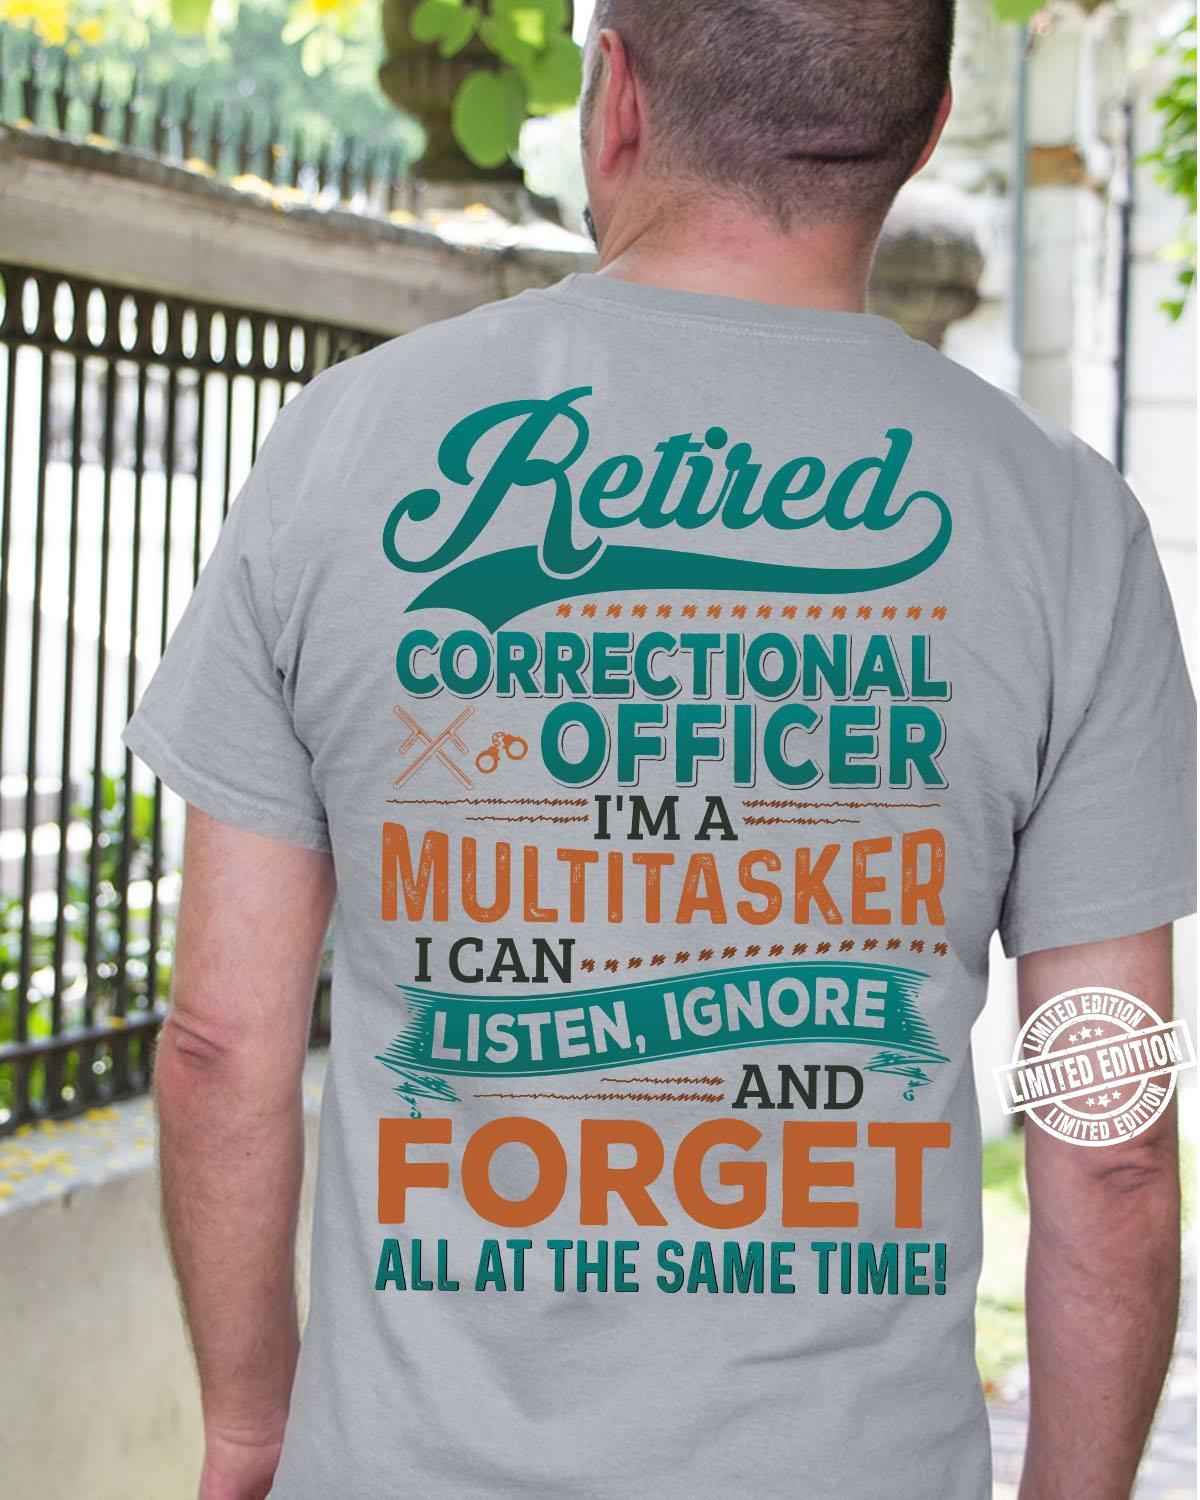 Retired correcyional officer i'm a multitasker i can listen ignore and forget all at the same time shirt